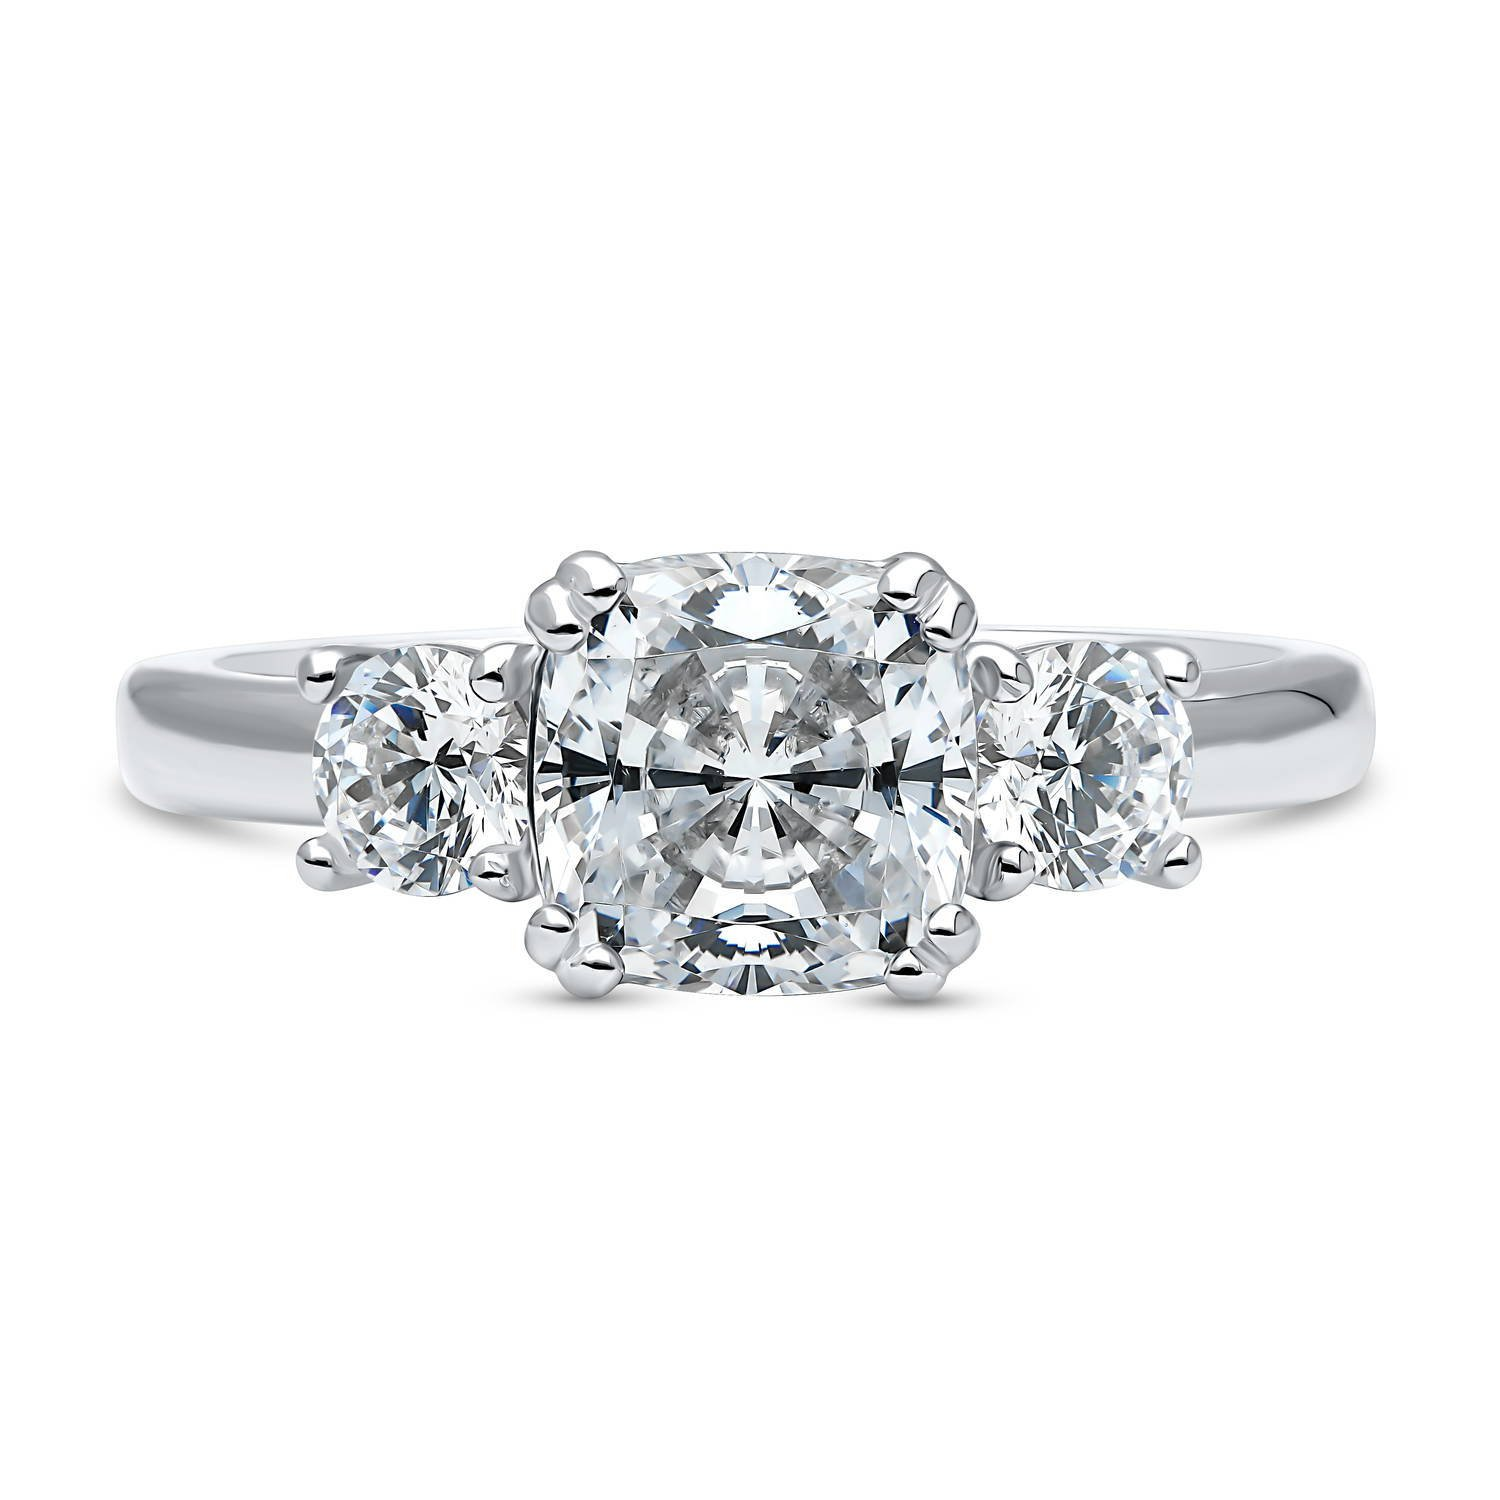 BERRICLE Rhodium Plated Silver Cushion Cut Cubic Zirconia CZ 3-Stone Promise Engagement Ring Size 8.5 by BERRICLE (Image #2)